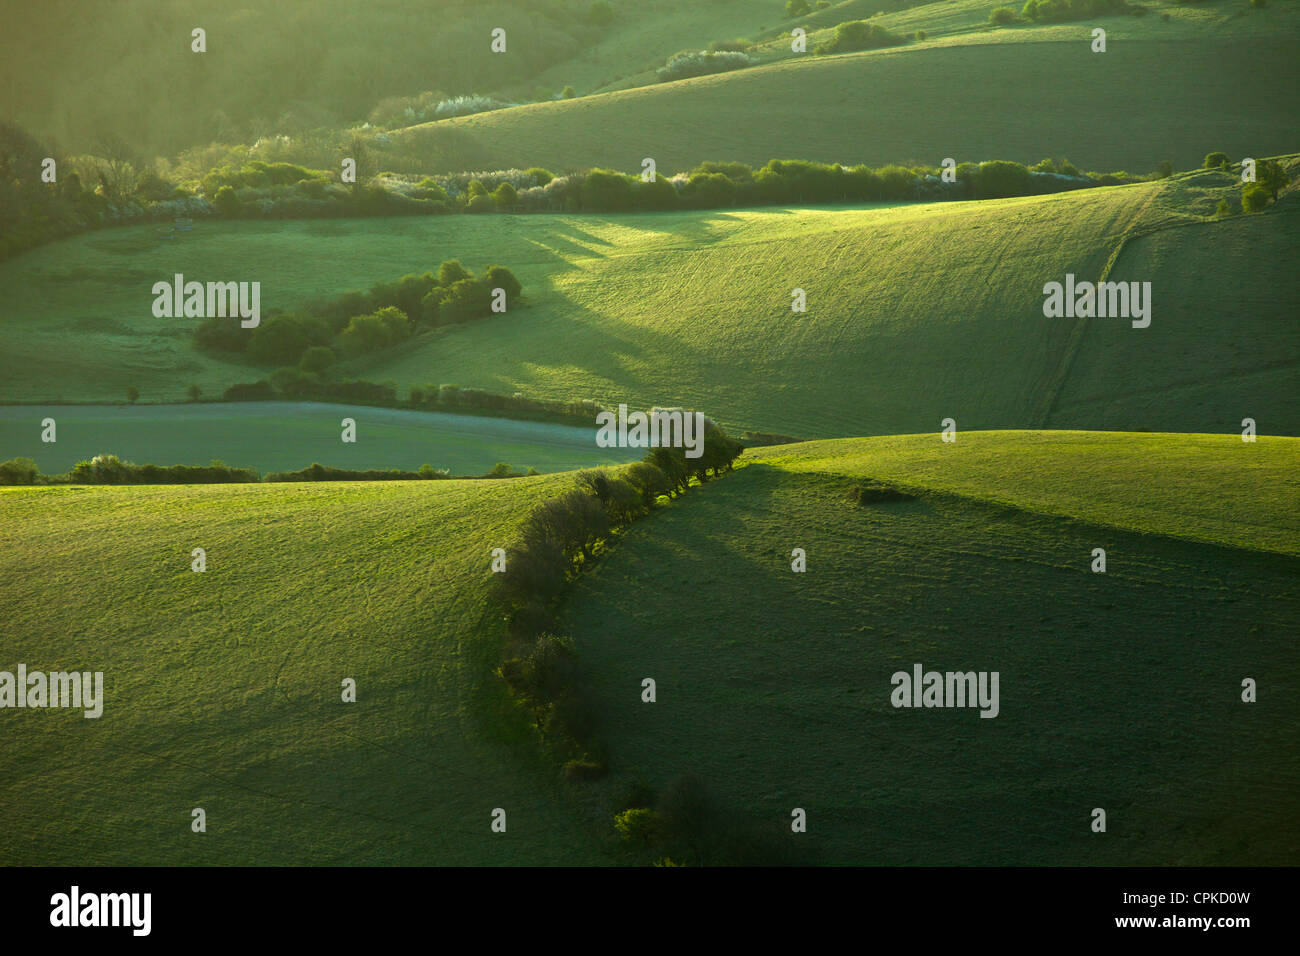 Spring morning in South Downs National Park in East Sussex, England. - Stock Image